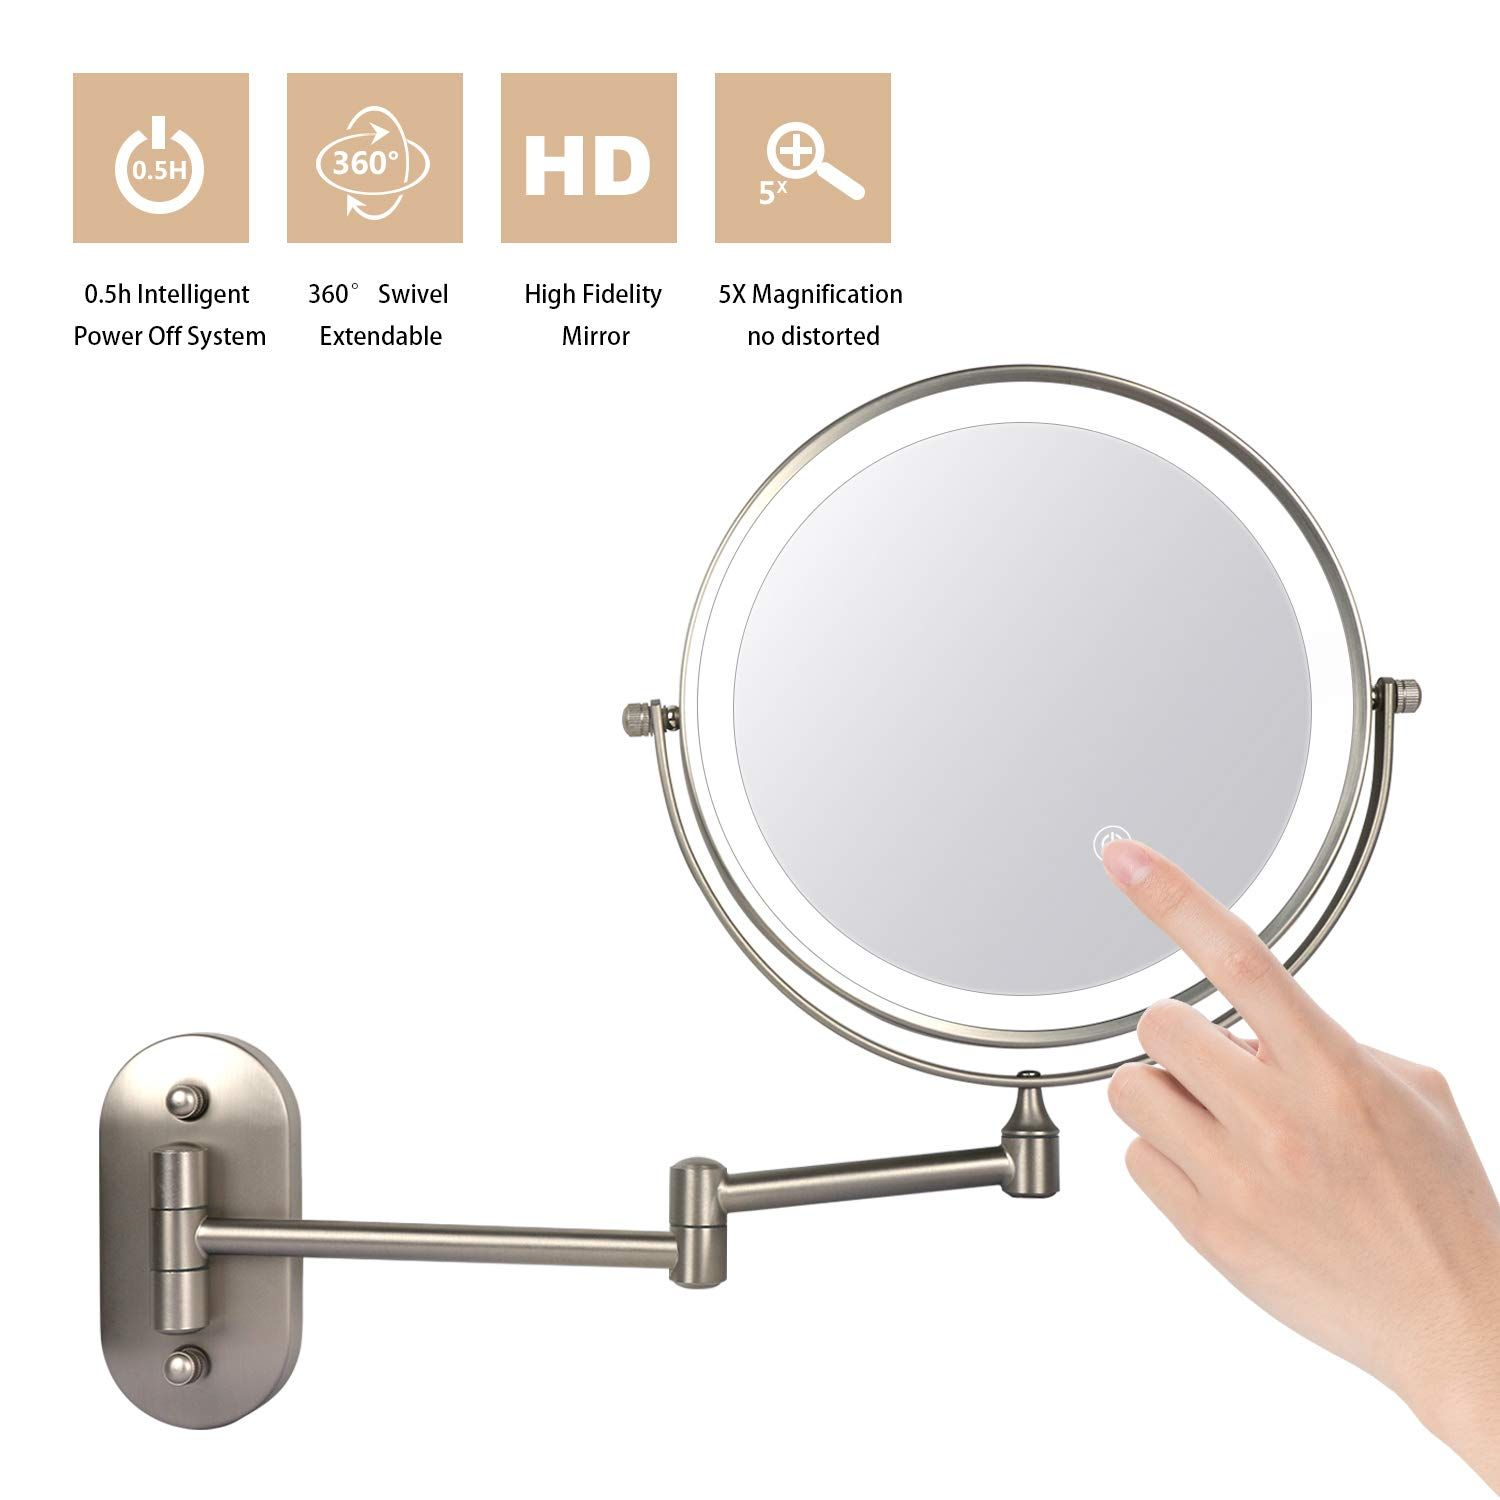 Zephbra Wall Mounted Makeup Mirror 8 Led Touch Screen Adjustable Light Double Sided 1x 5x Magnifying Van In 2020 Wall Mounted Makeup Mirror Mirror Adjustable Lighting